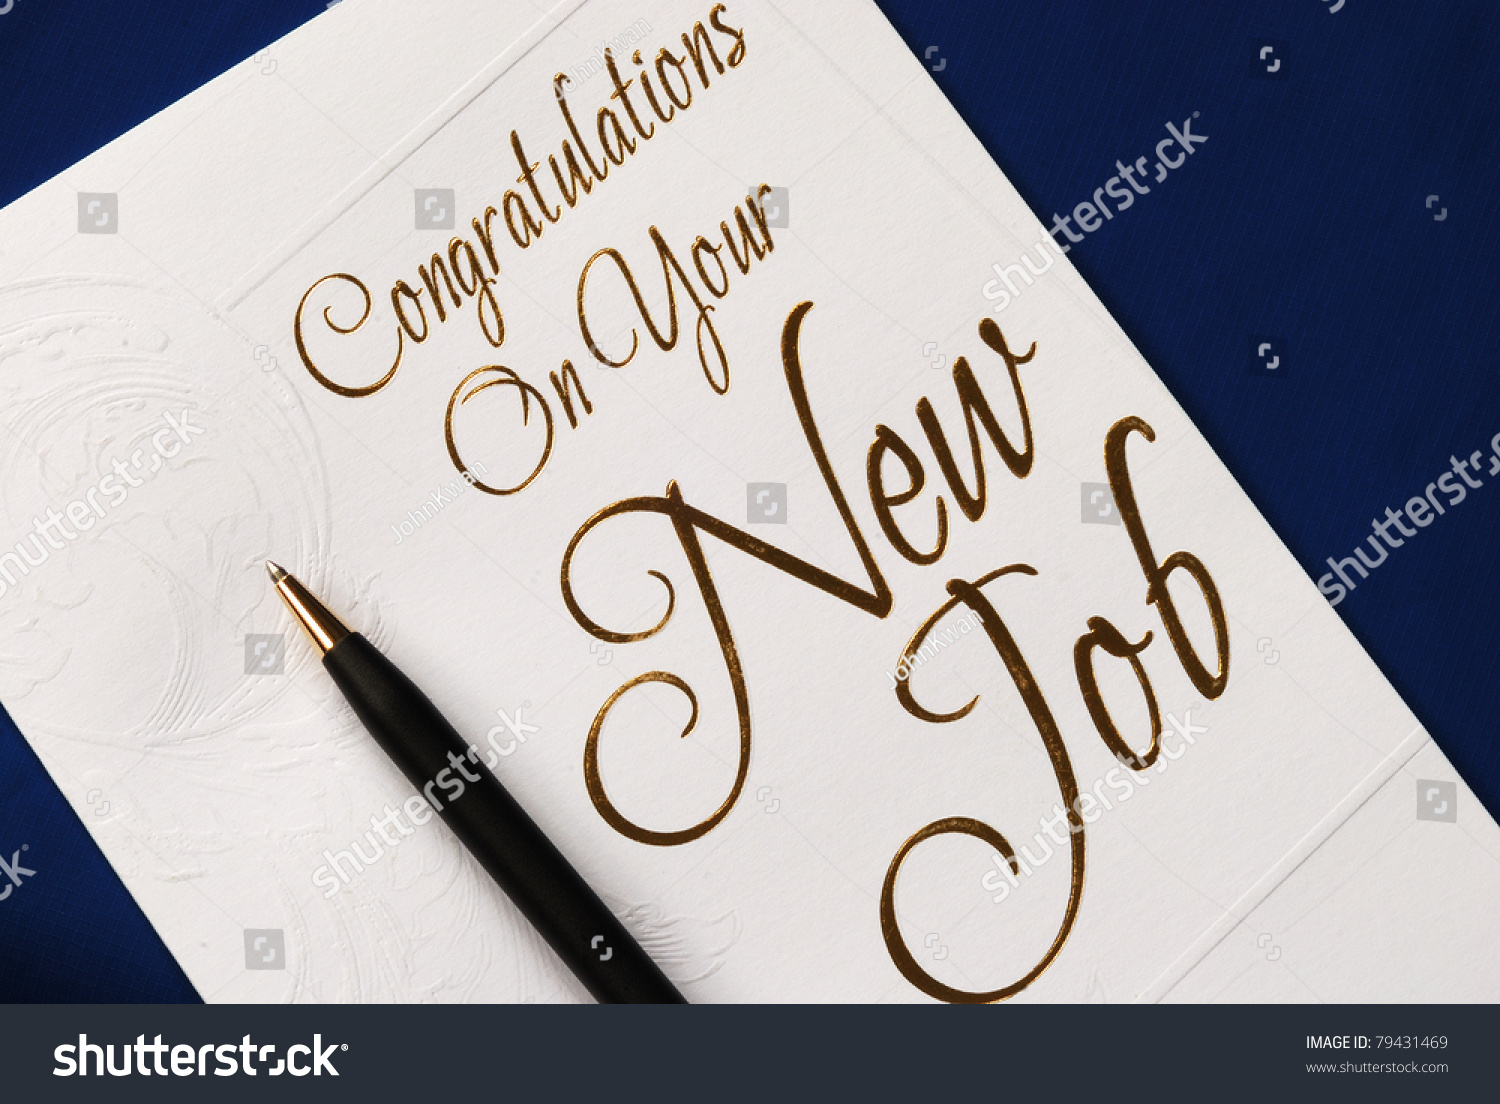 congratulation on finding new job this stock photo  congratulation on finding a new job in this labor market